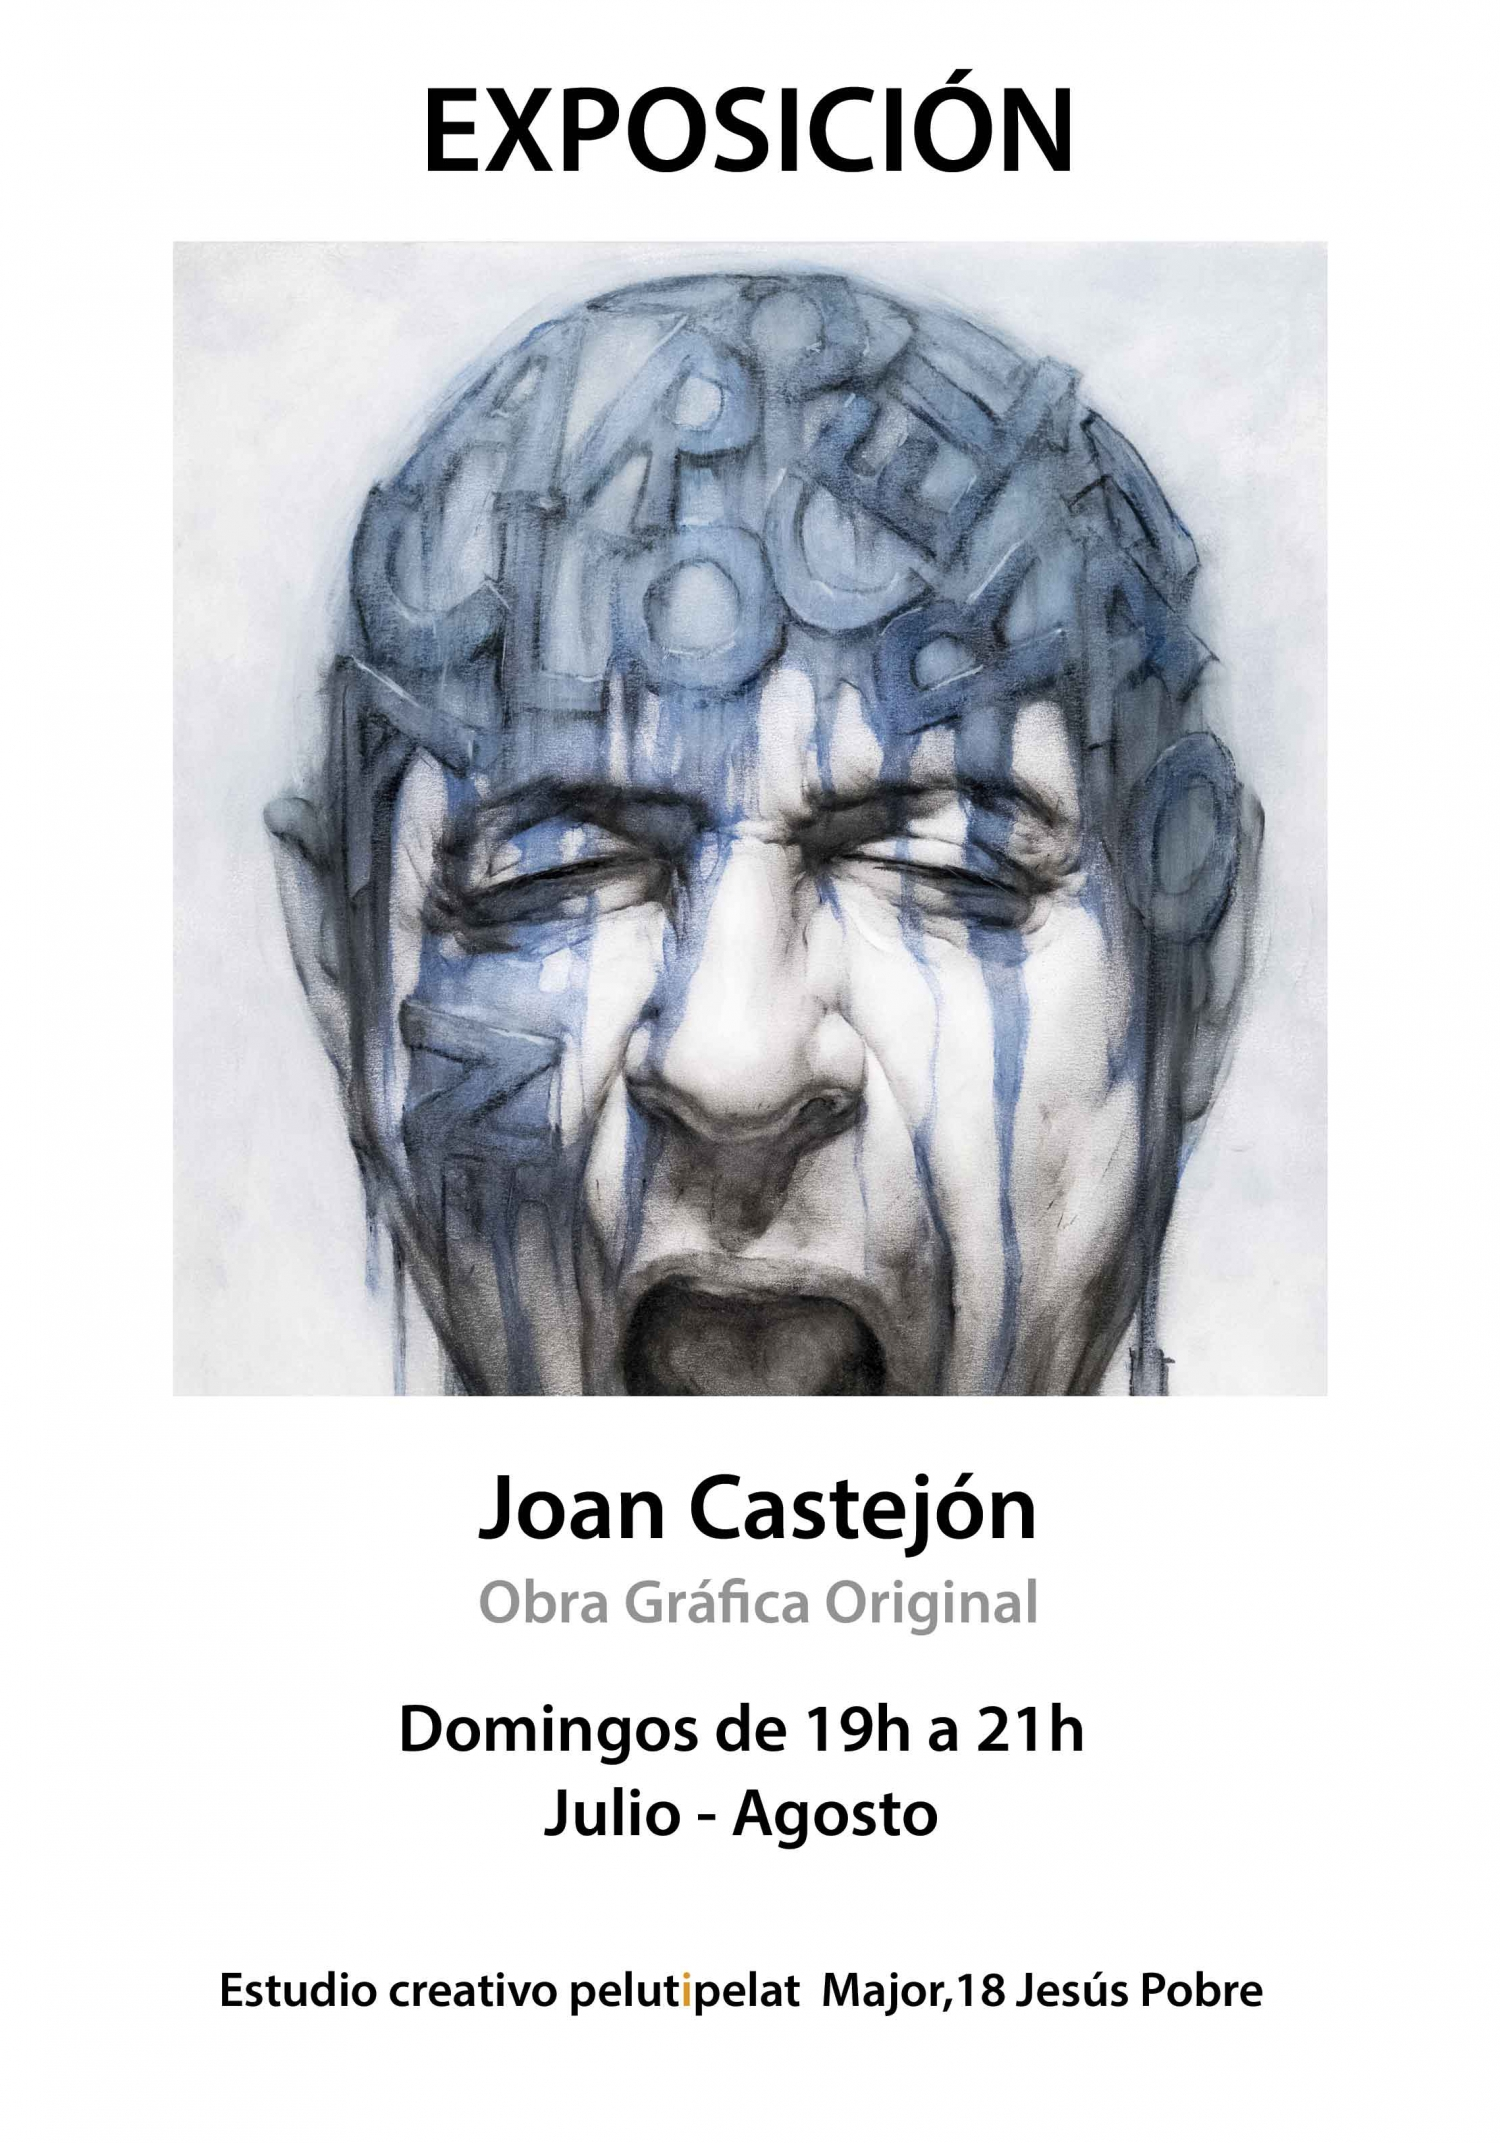 Exhibition of paintings by Joan Castejon in Jesus Pobre